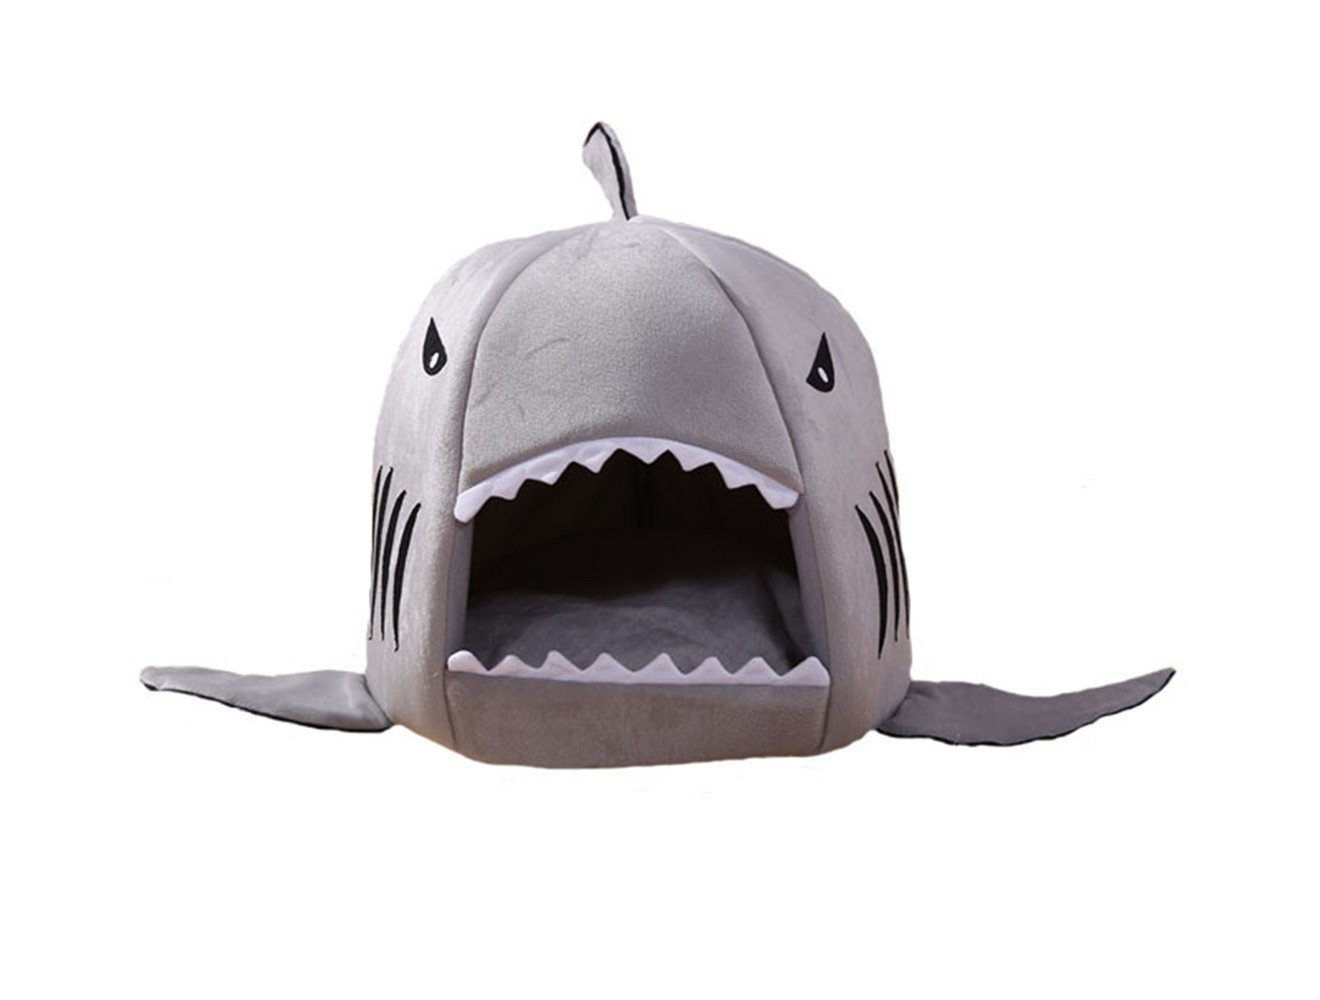 D-Foxes Cozy Shark Bed Puppy Cat Indoor Outdoor Cave Sweet House Bed Dog Play Room Bed with Removable Cushion Inside